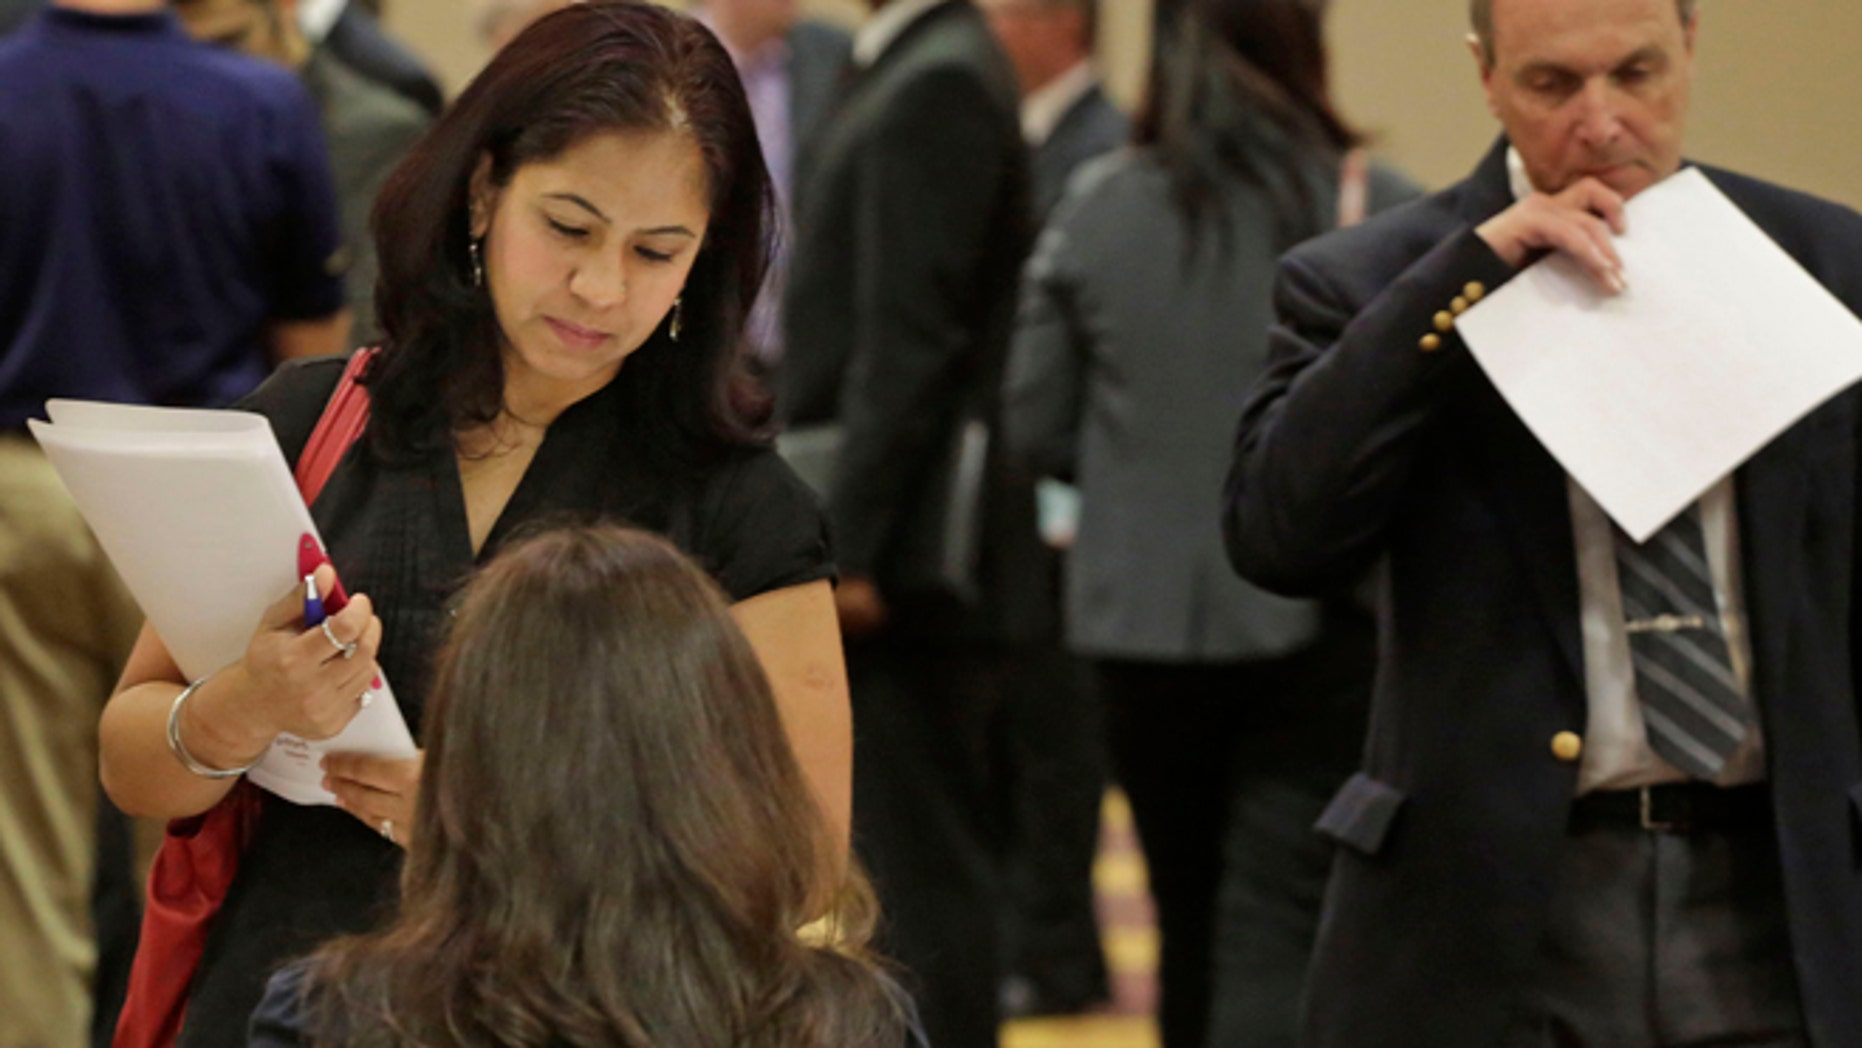 In this May 29, 2013 photo, job seeker Anu Vatal of Chicago, speaks with Patrice Tosi of BluePay, seated, during a career fair in Rolling Meadows, Ill. The U.S. economy added 175,000 jobs in May, a gain that shows employers are hiring at a still-modest but steady pace despite government spending cuts and higher taxes, according to the Labor Department, Friday, June 7, 2013. (AP Photo/M. Spencer Green)